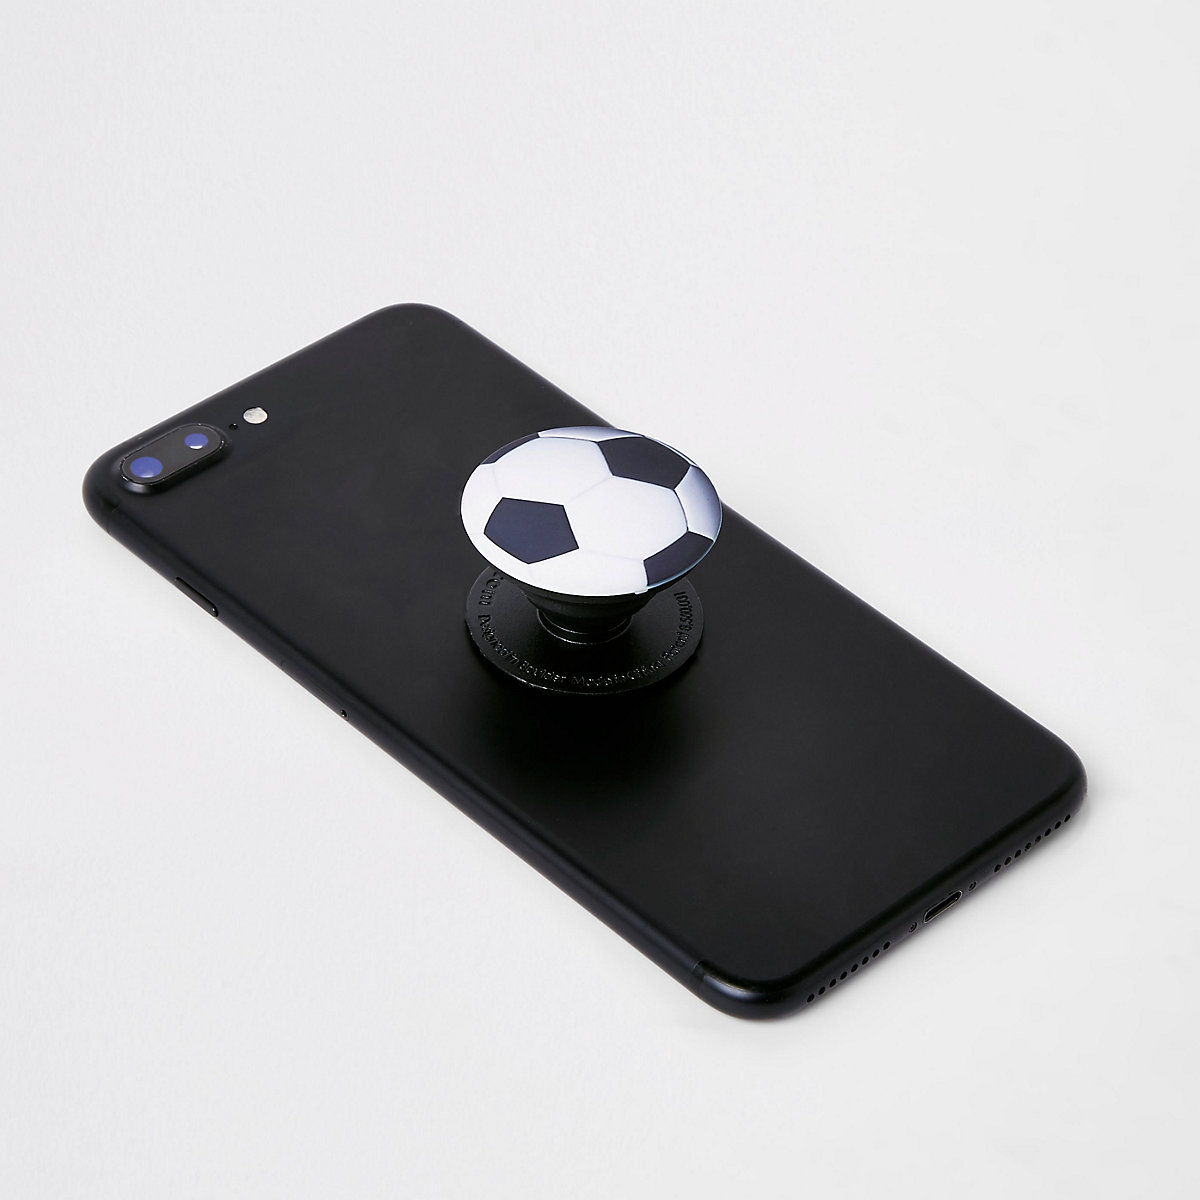 Boys Popsockets football phone grip and stand